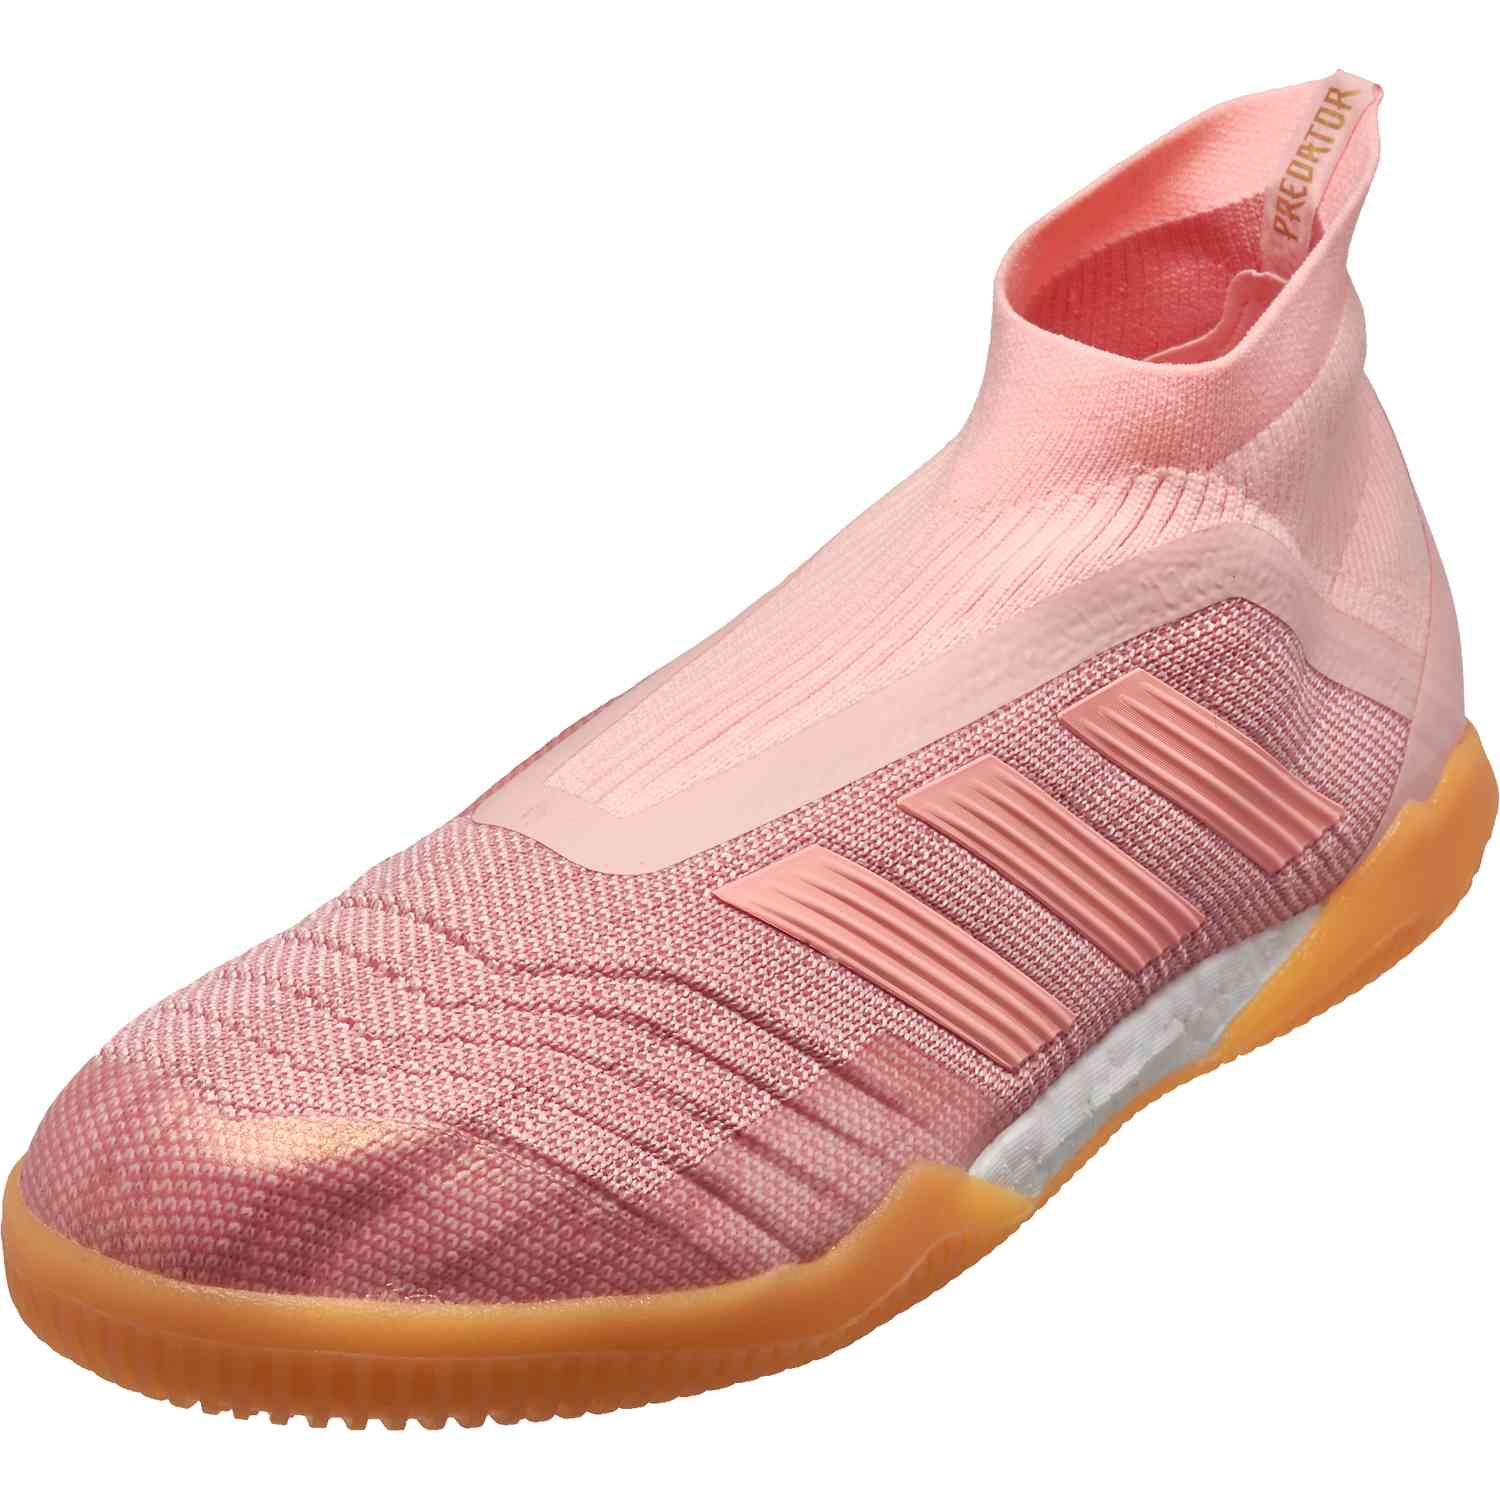 premium selection 9be1f 1d430 adidas Predator Tango 18+ IN – Clear OrangeTrace Pink